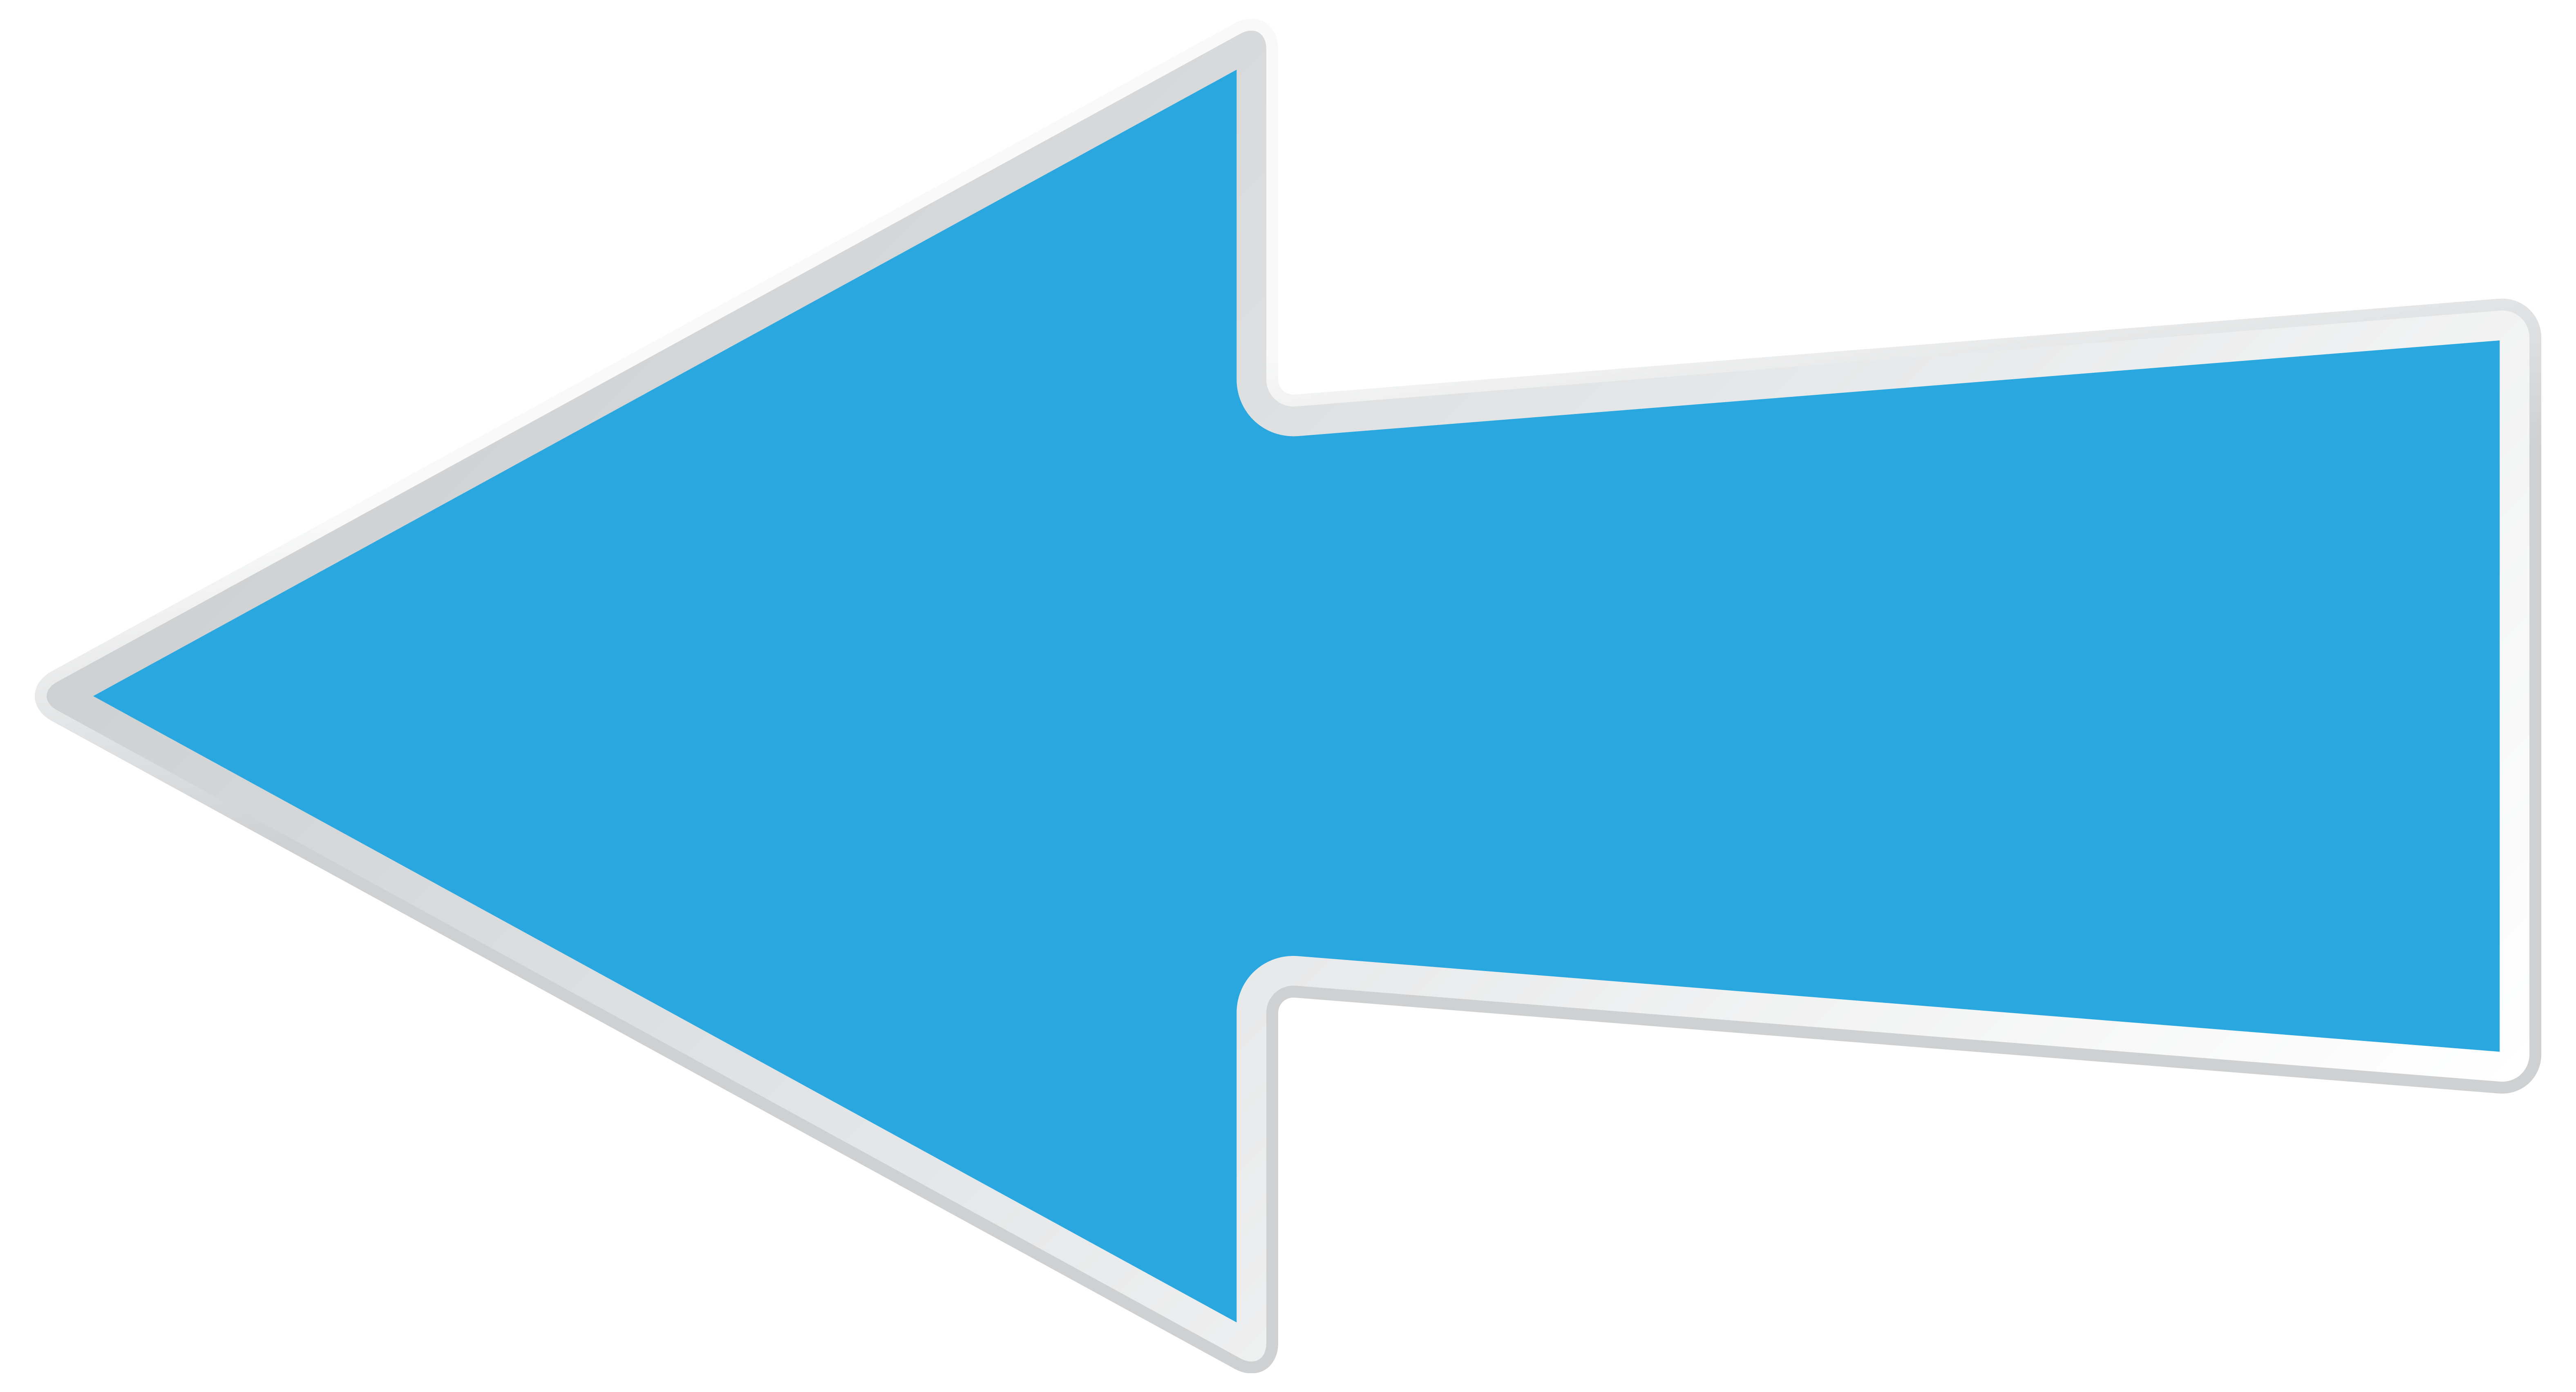 Blue Left Arrow Transparent Png Image